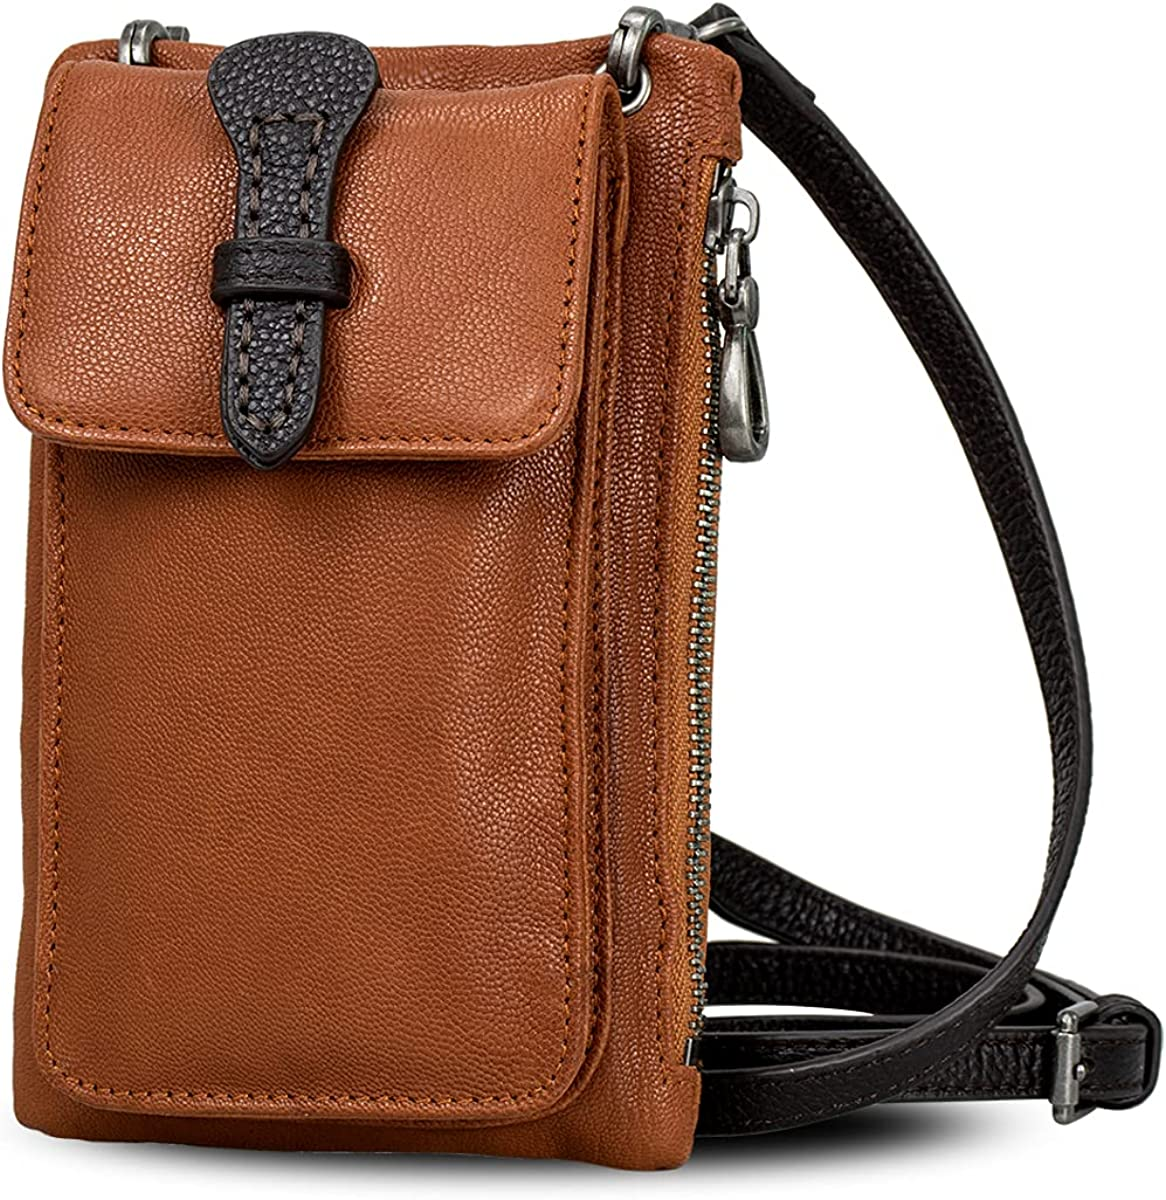 Women's OFFer Wallet Leather Crossbody Bag Women 5% OFF P Organizer for Cards